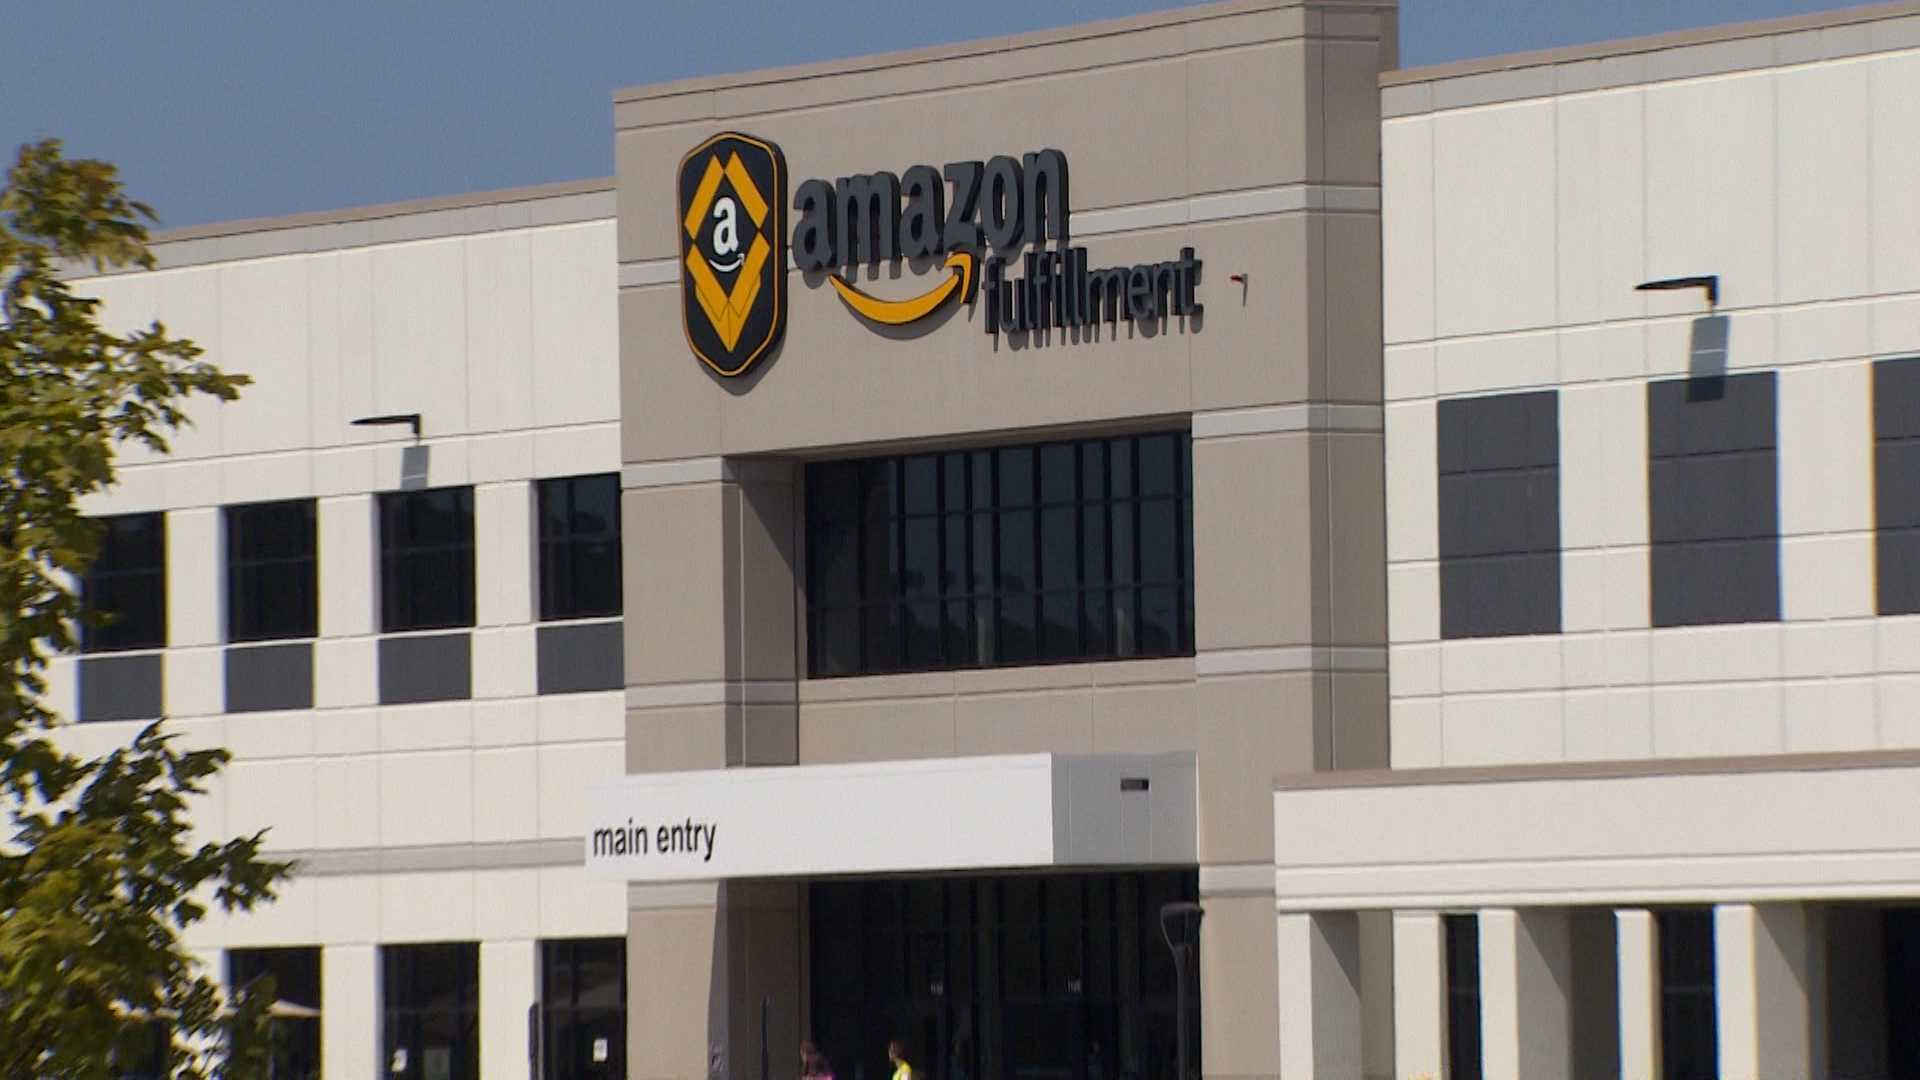 Could Memphis Really Land Amazon's Second Headquarters?